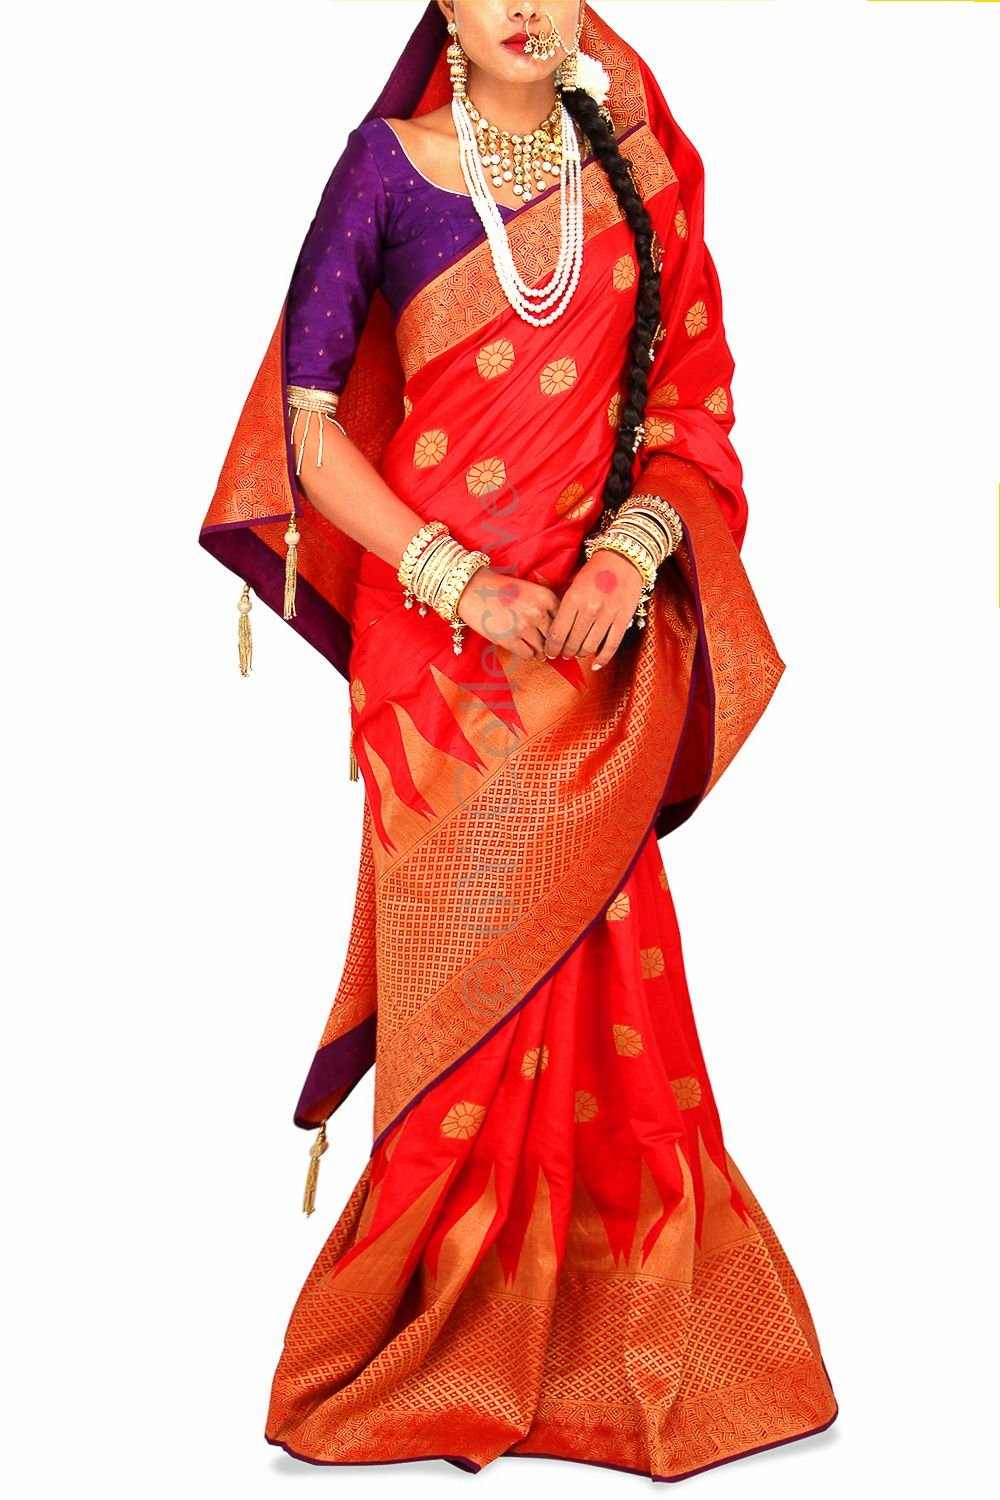 Temple Red Brocade Sari with Purple (Code-S1705) Price: INR 6790 To shop visit: http://www.6ycollective.com/products/S1705/